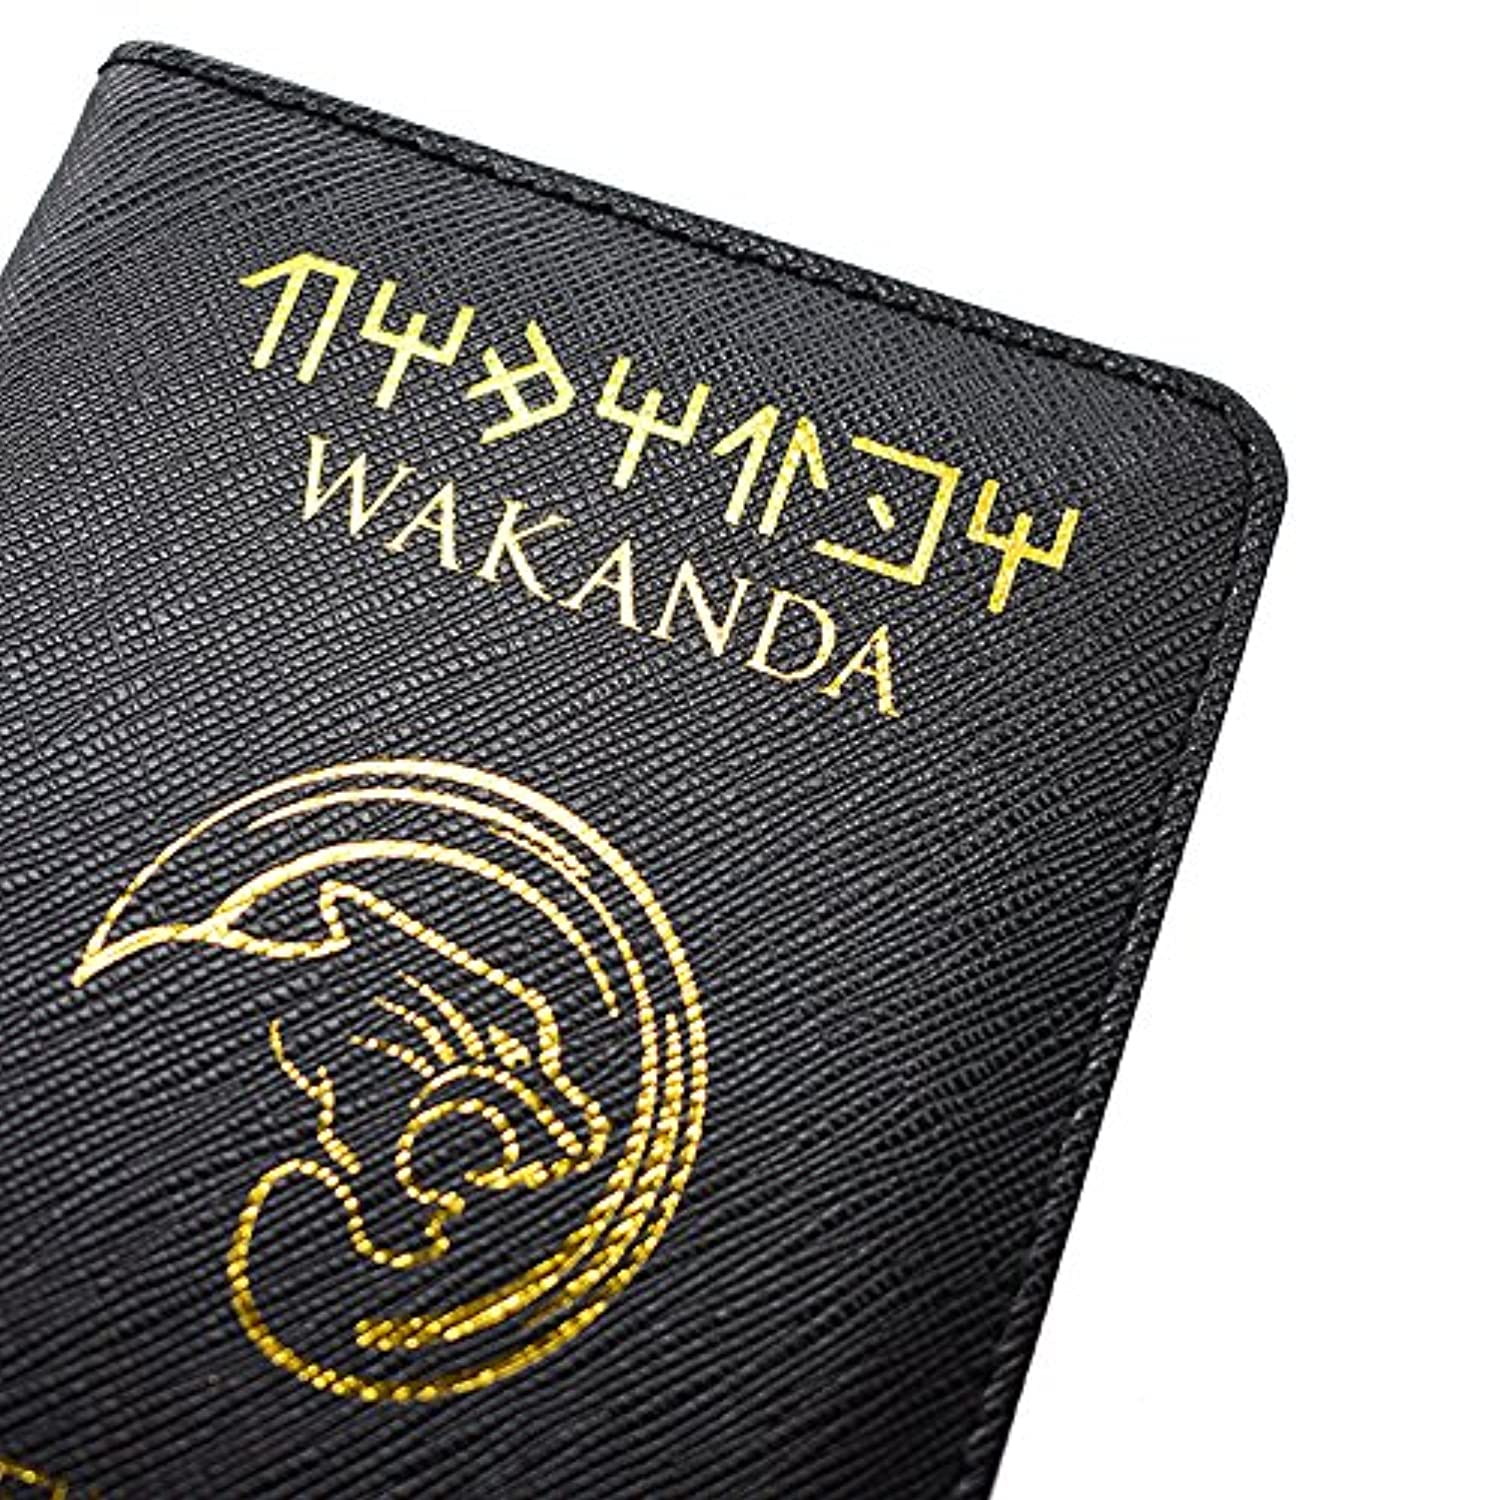 1a0c37b2a018 Passeport Wakanda - Protège-passeport - couvre passeport Housse de protection  passeport international panther